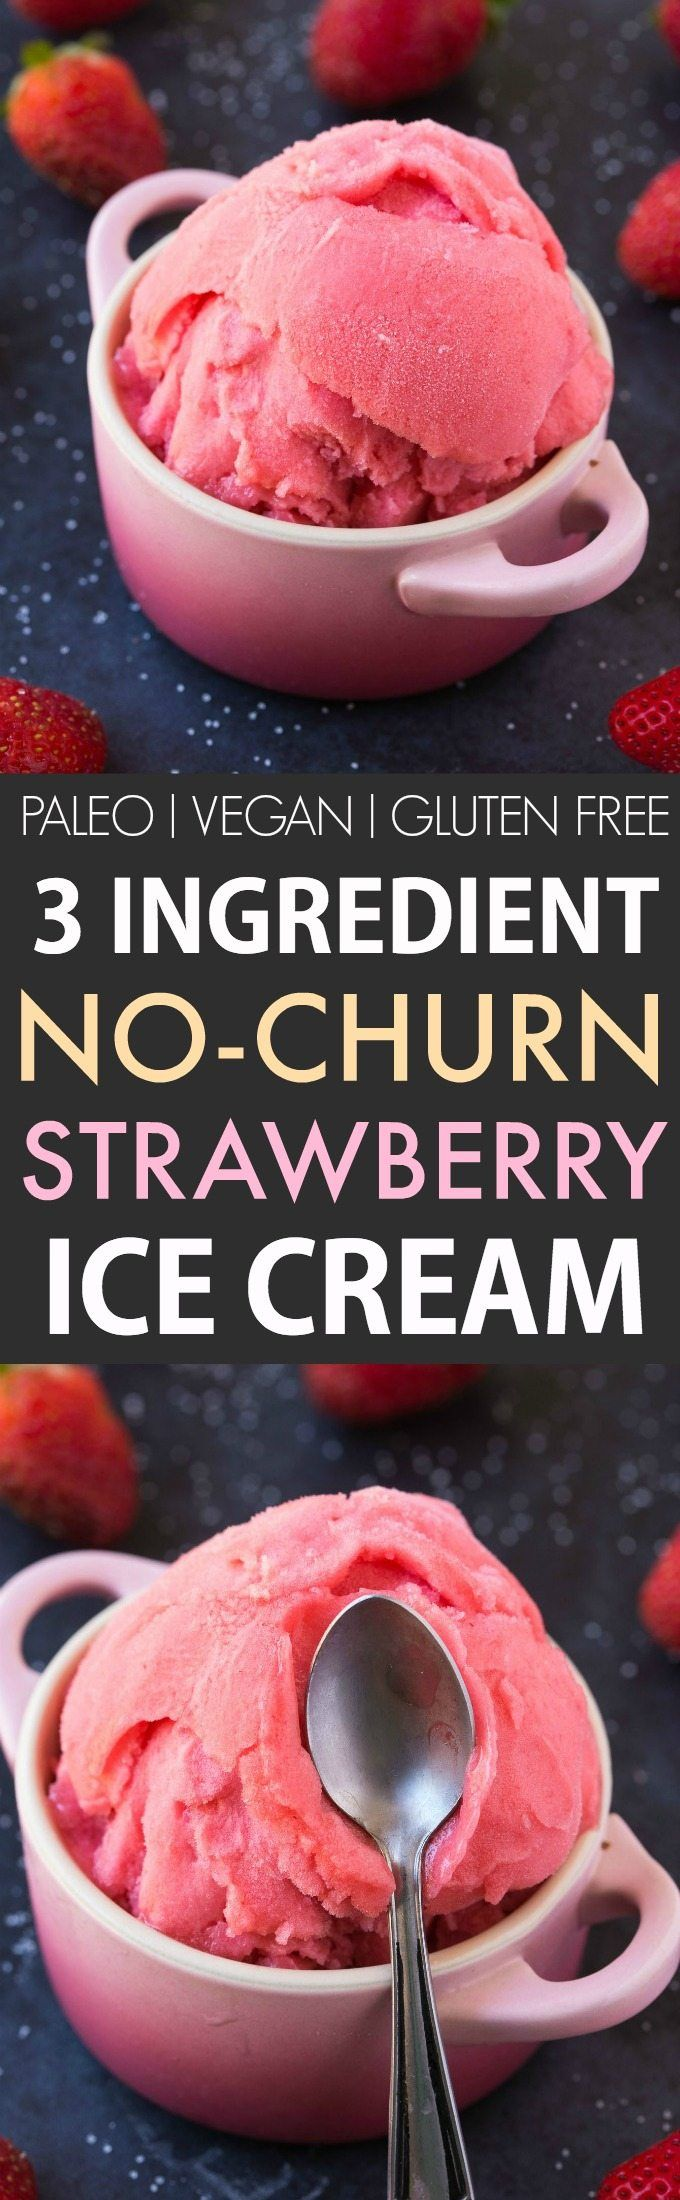 3 Ingredient Blender Strawberry Ice Cream (V, GF, P, DF)- No-Churn, easy and fool-proof ice cream (nice cream) made with three easy ingredients and NO ice-cream maker needed! {vegan, gluten free, paleo recipe}- thebigmansworld.com